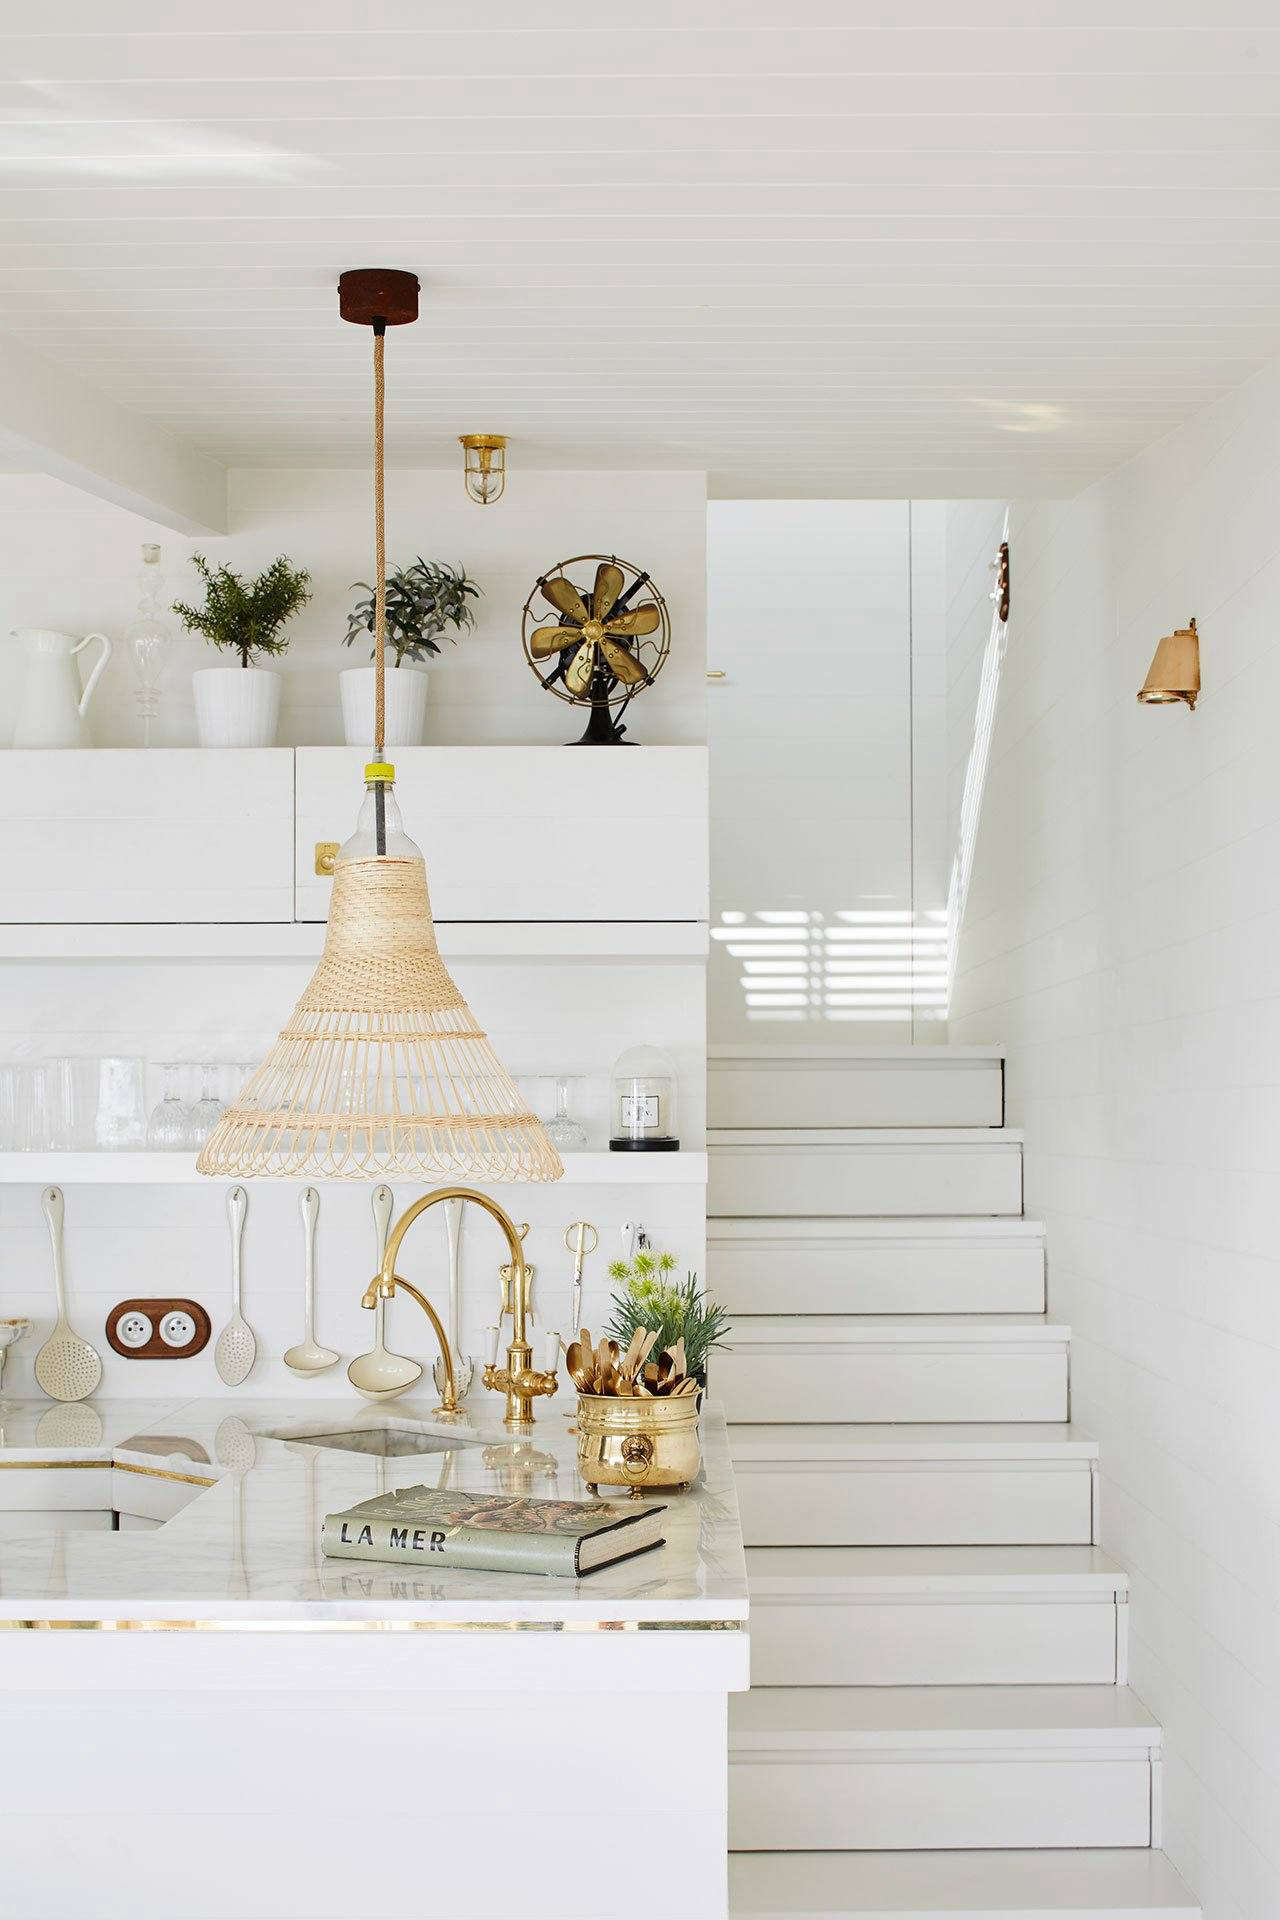 The marble-topped counter is edged with a band of brass and has a custom brass sink with a Lefroy Brooks gooseneck faucet. Note the drawers built into the stairs.